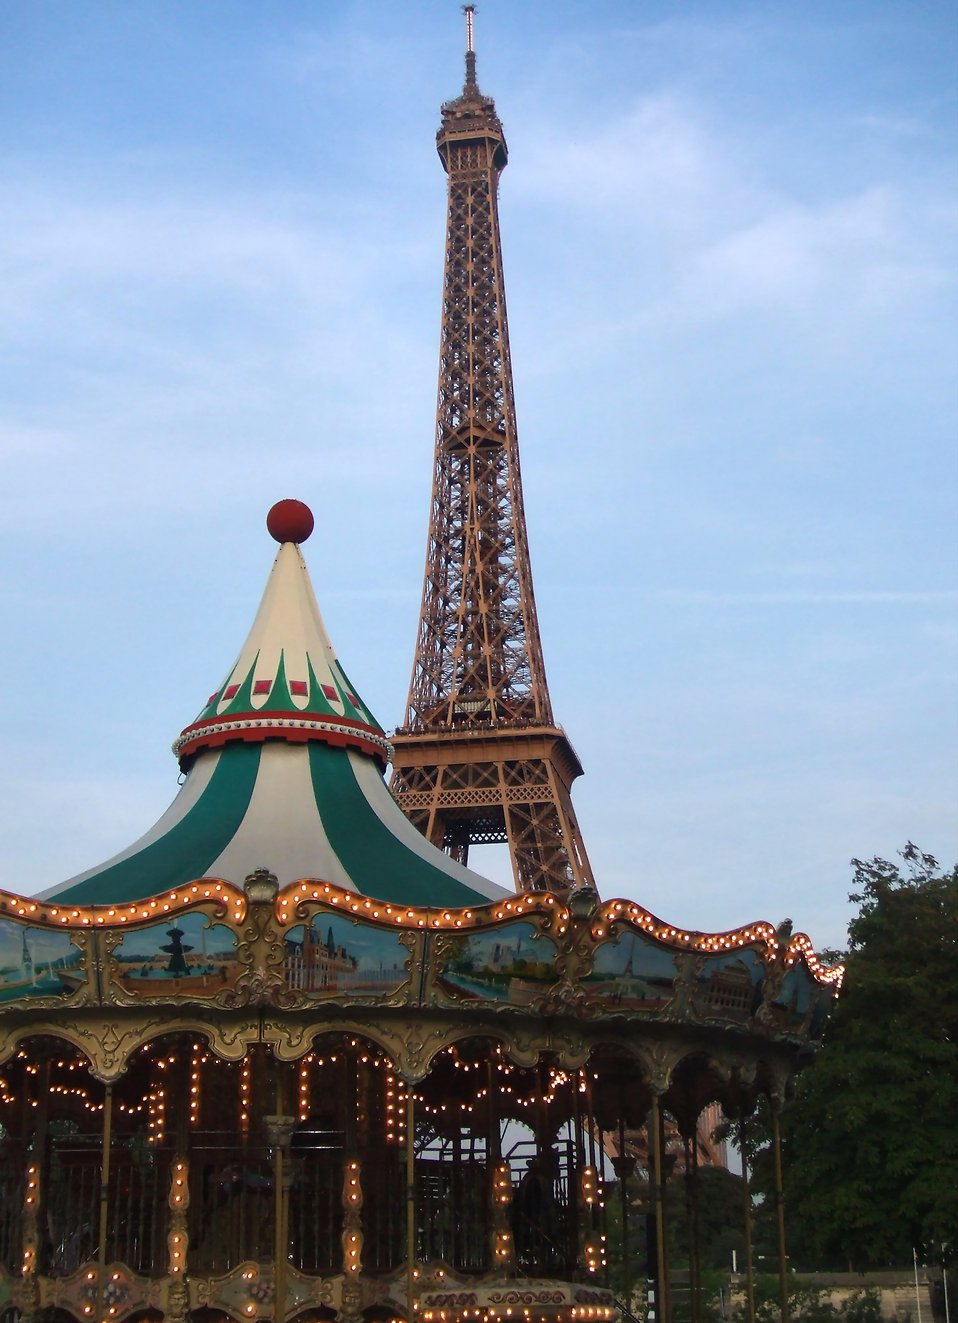 The Eiffel Tower and a carousel : Free Stock Photo